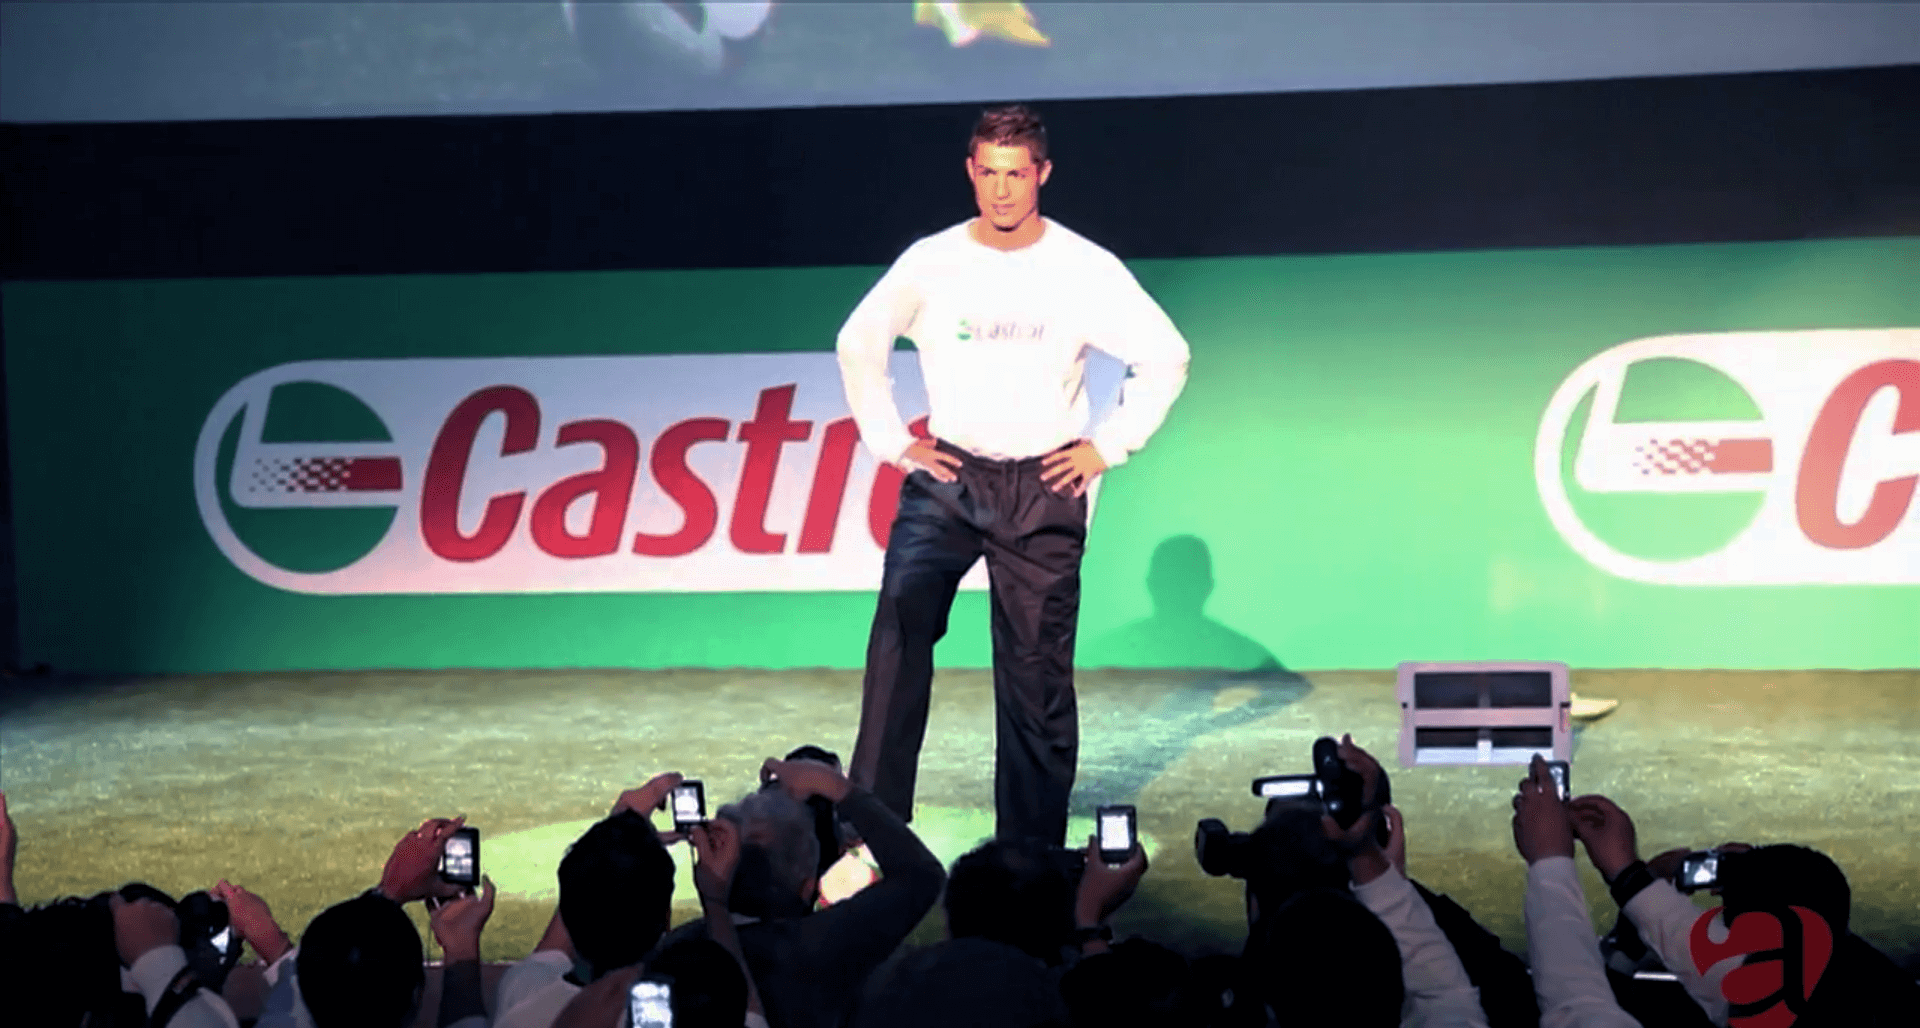 Event production services in spain CASTROL CRISTIANO RONALDO